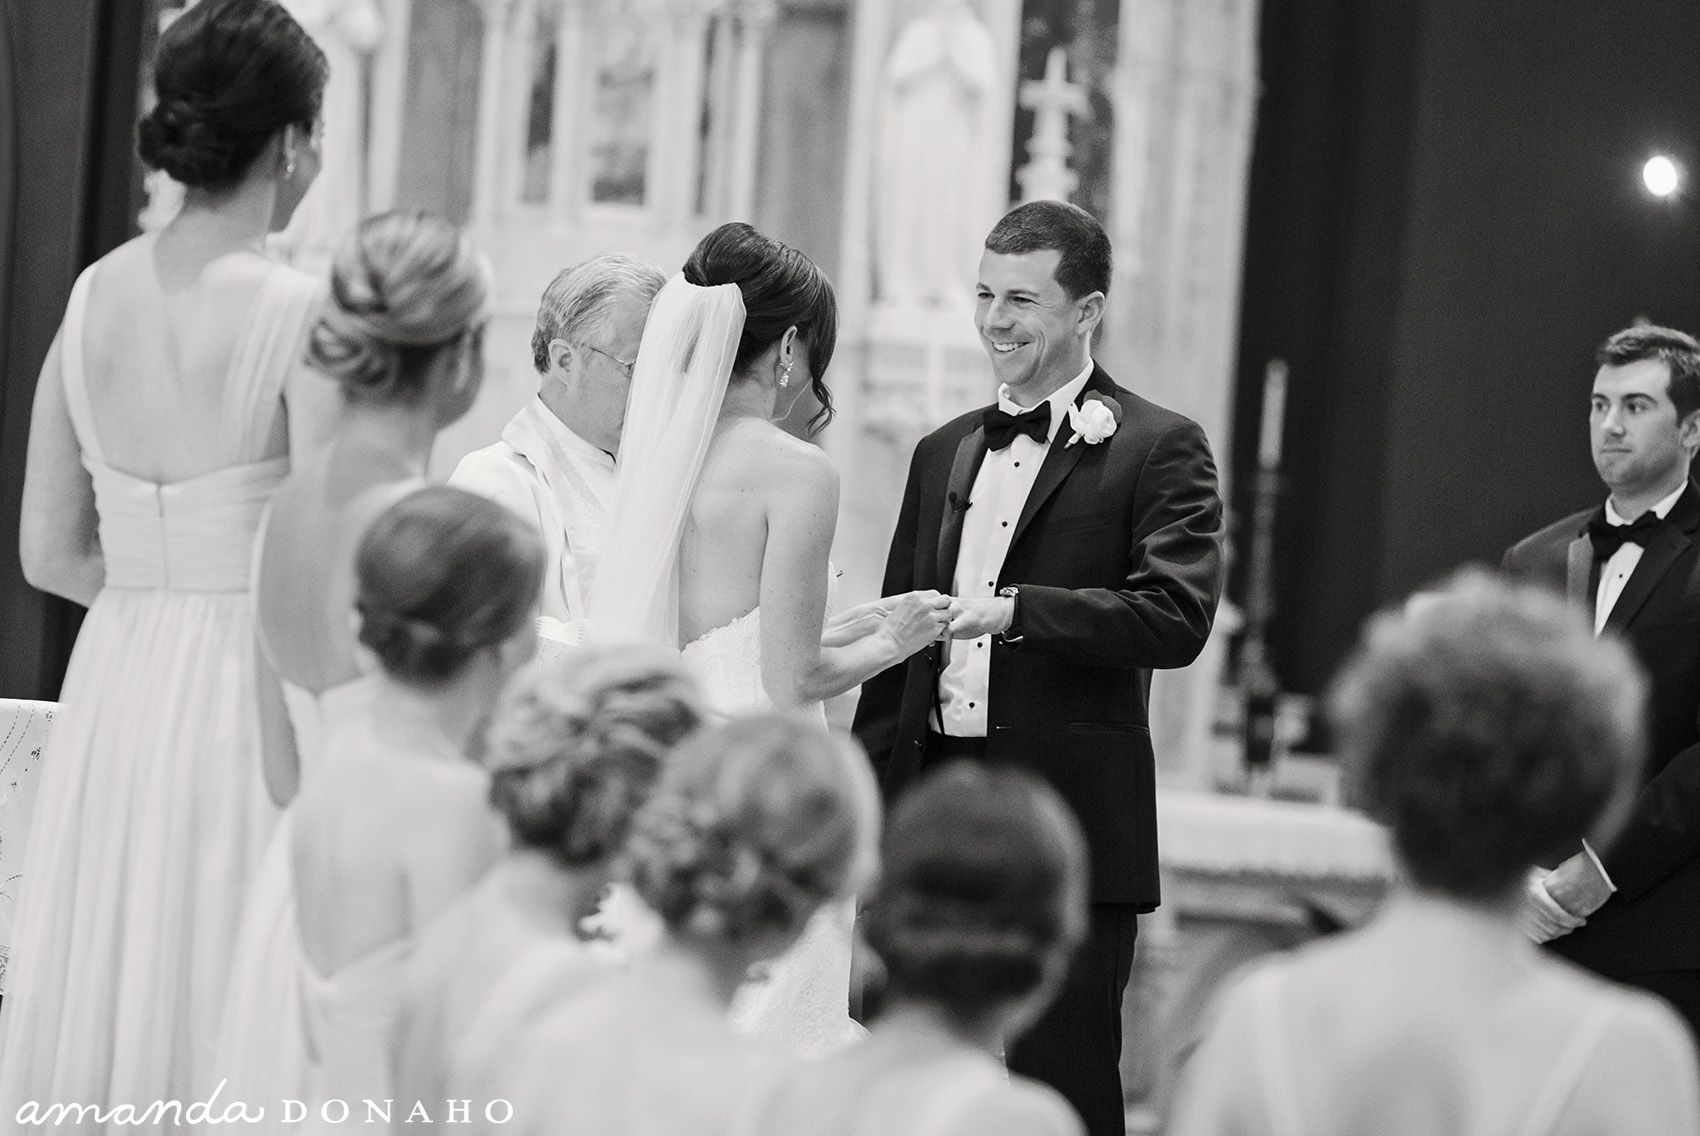 Timeless and classic photo of bride and groom exchanging vows on